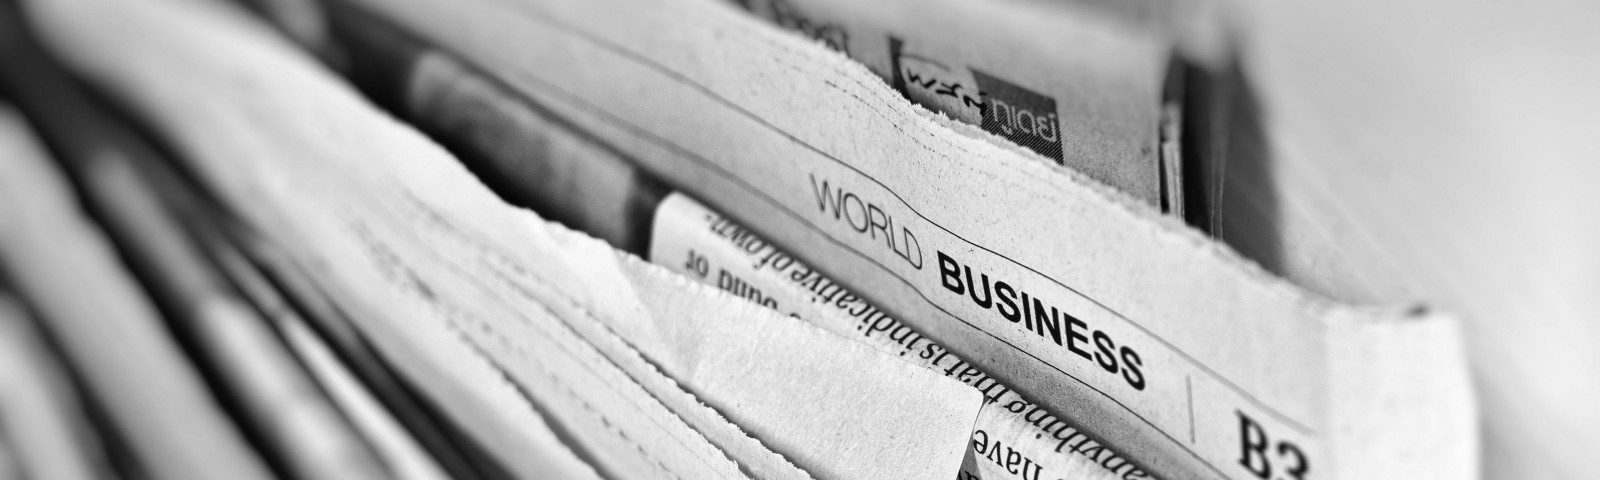 A set of broadsheet newspapers stacked horizontally with business section highlighted.